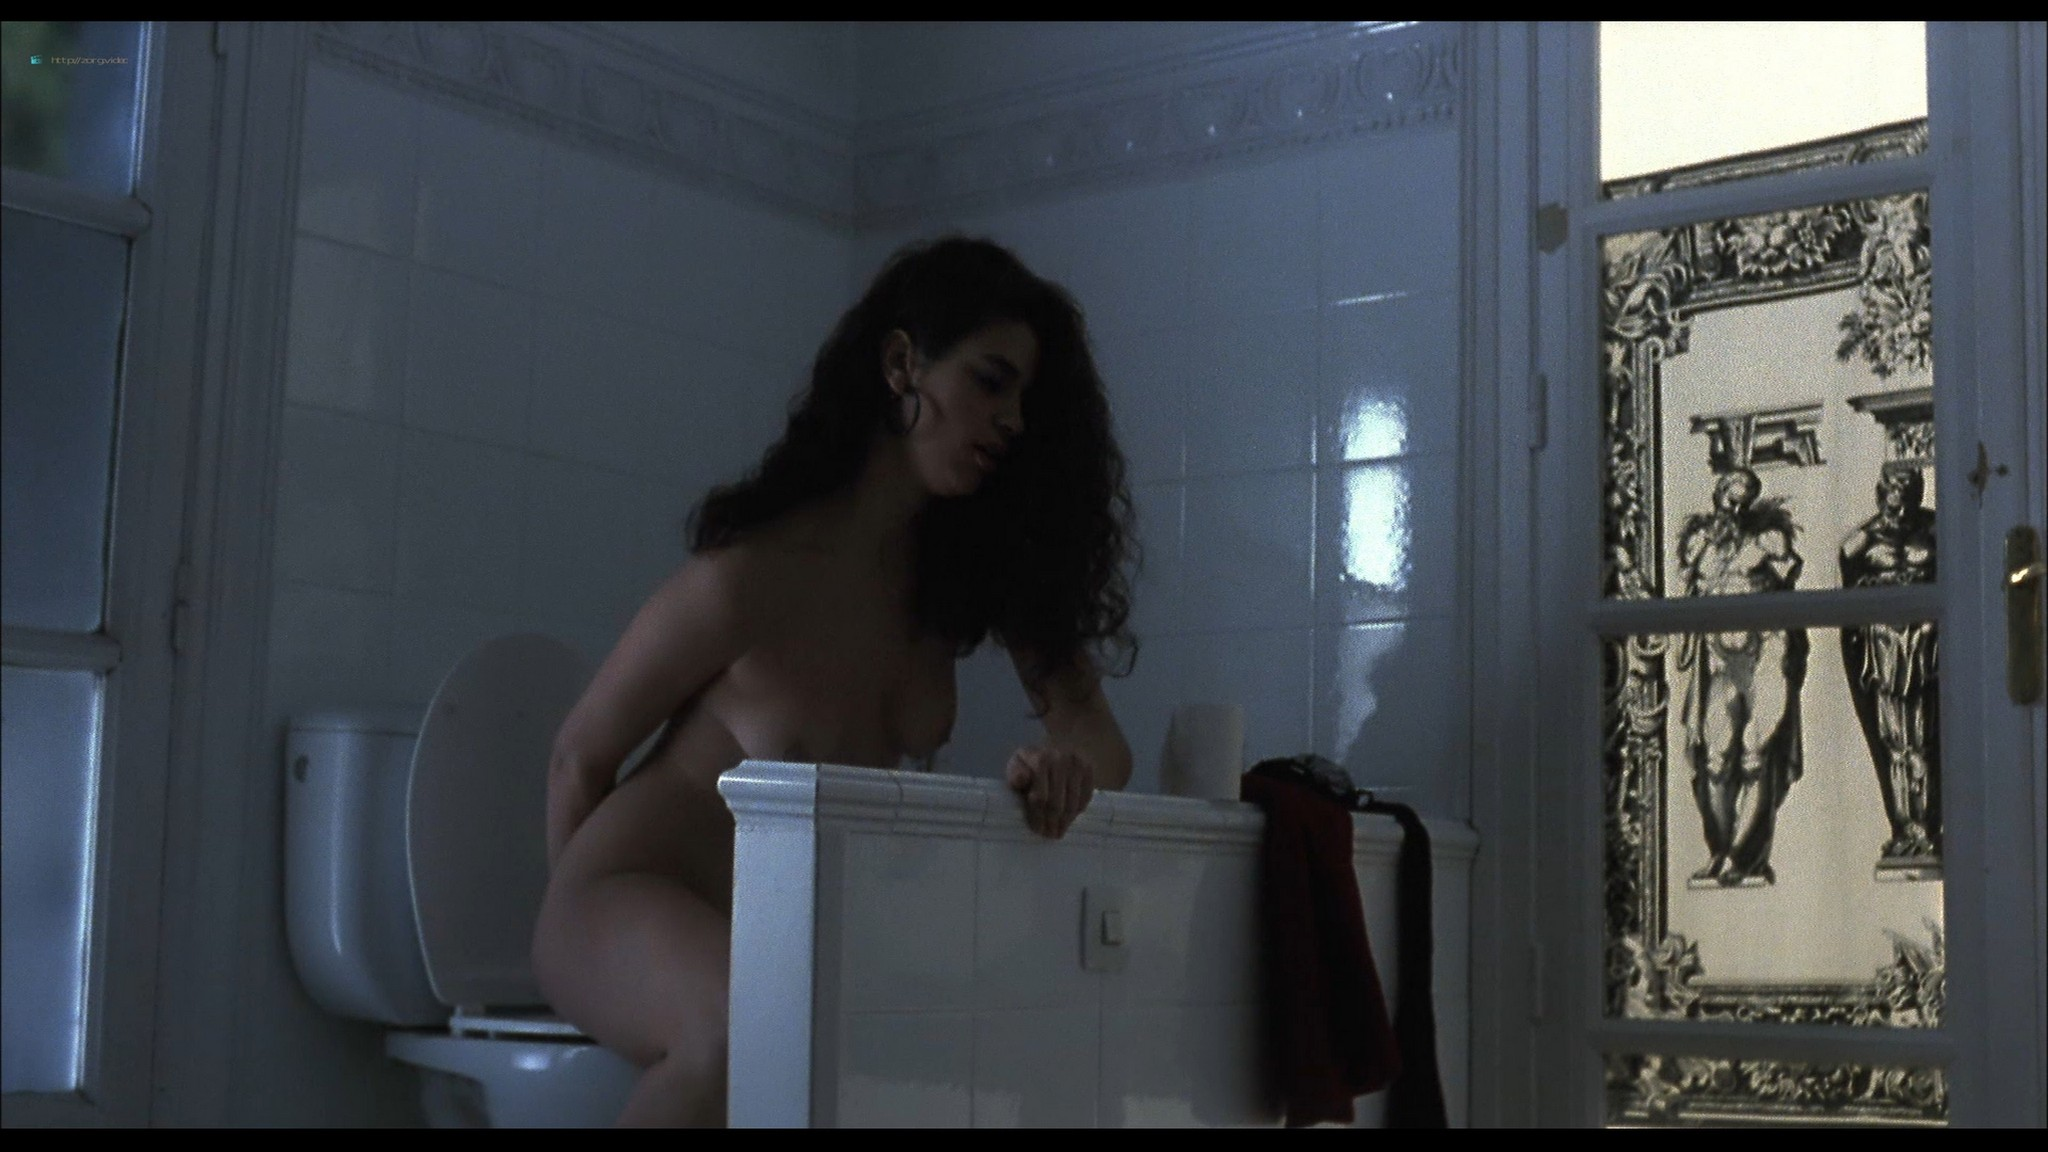 Ruth Gabriel nude full frontal Candela Peña nude too - Días contados (ES-1994) HD 1080p BluRay (r) (2)